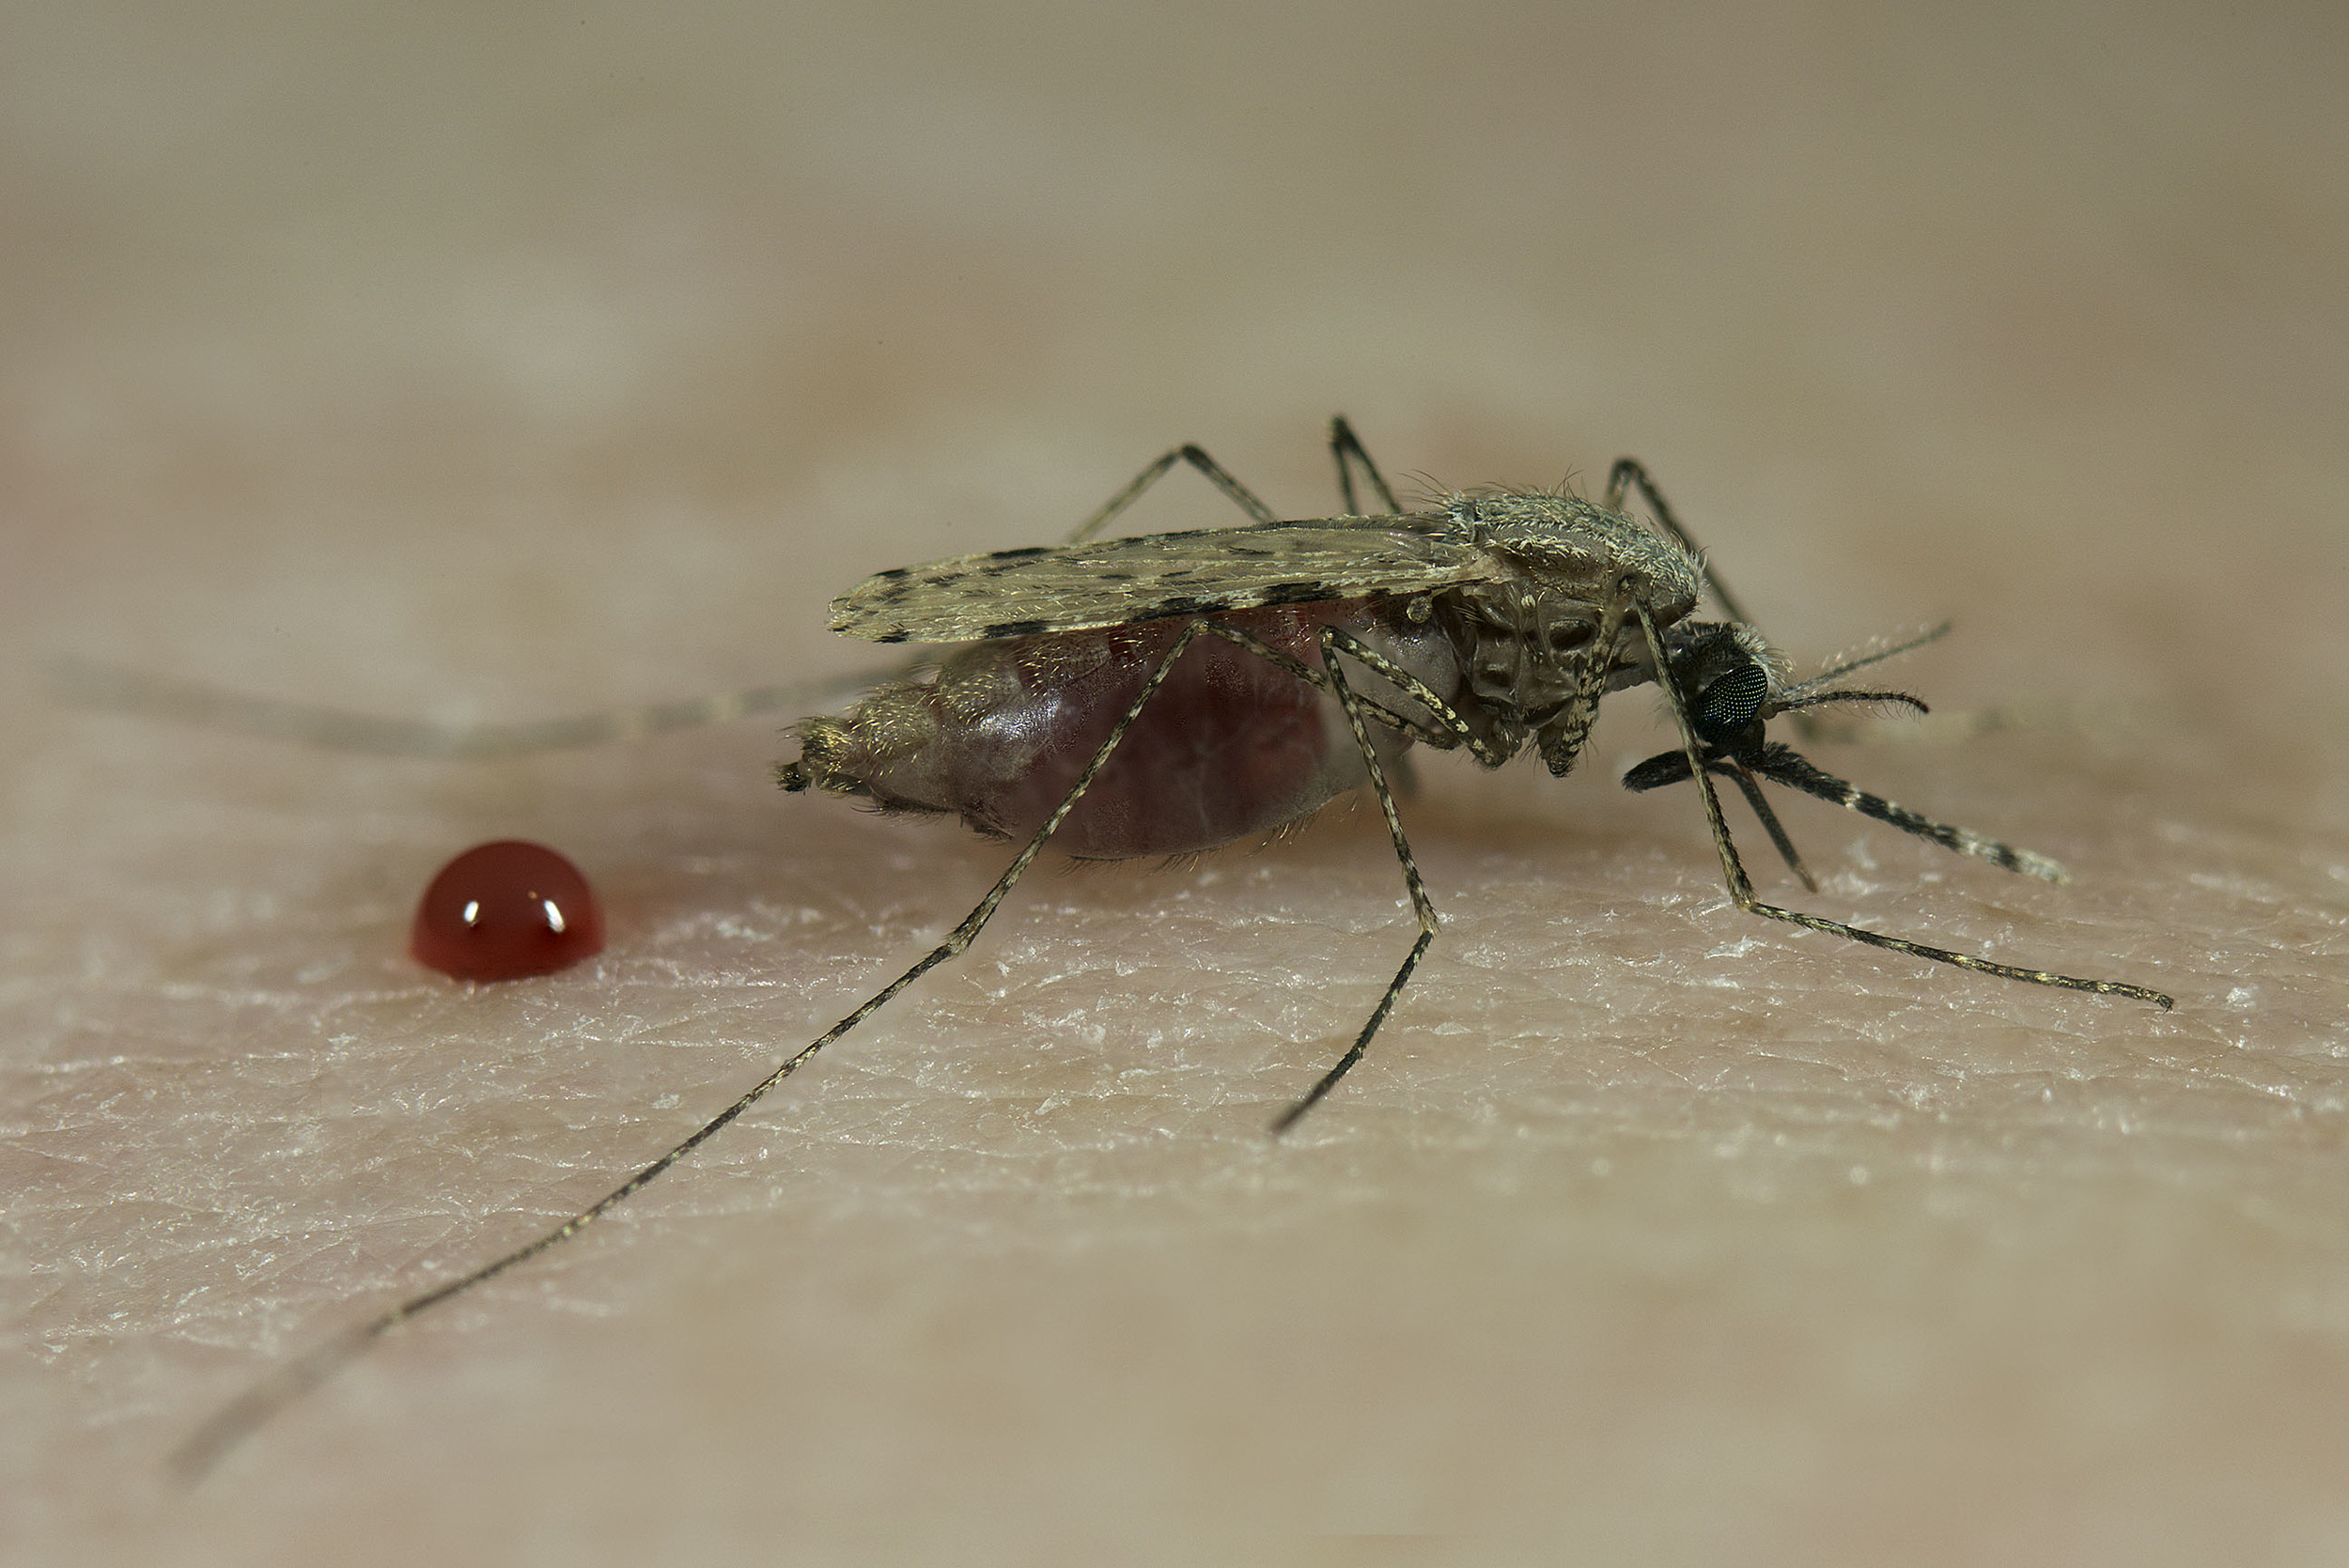 Blood feeding  Anopheles stephensi  - (Credit: Sinclair Stammers)